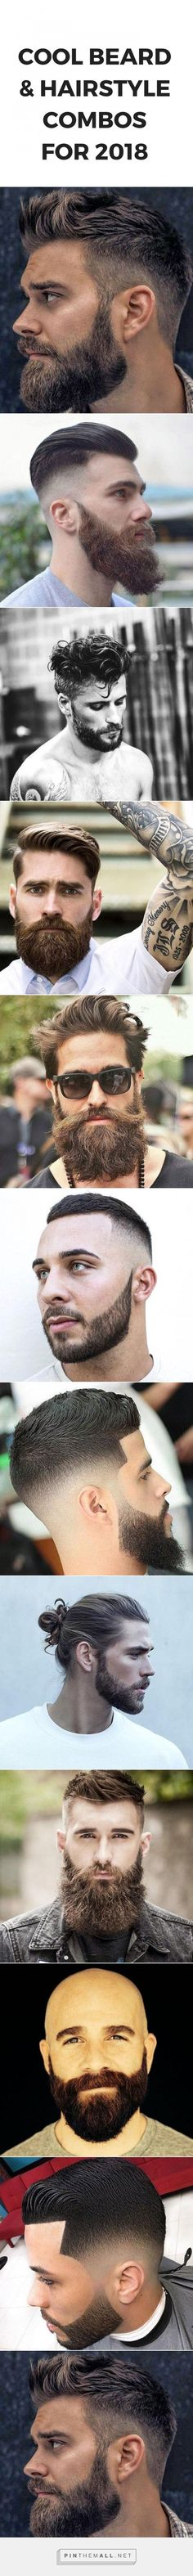 COOL BEARD AND HAIRSTYLE COMBOS FOR MEN #hairstyles #grooming